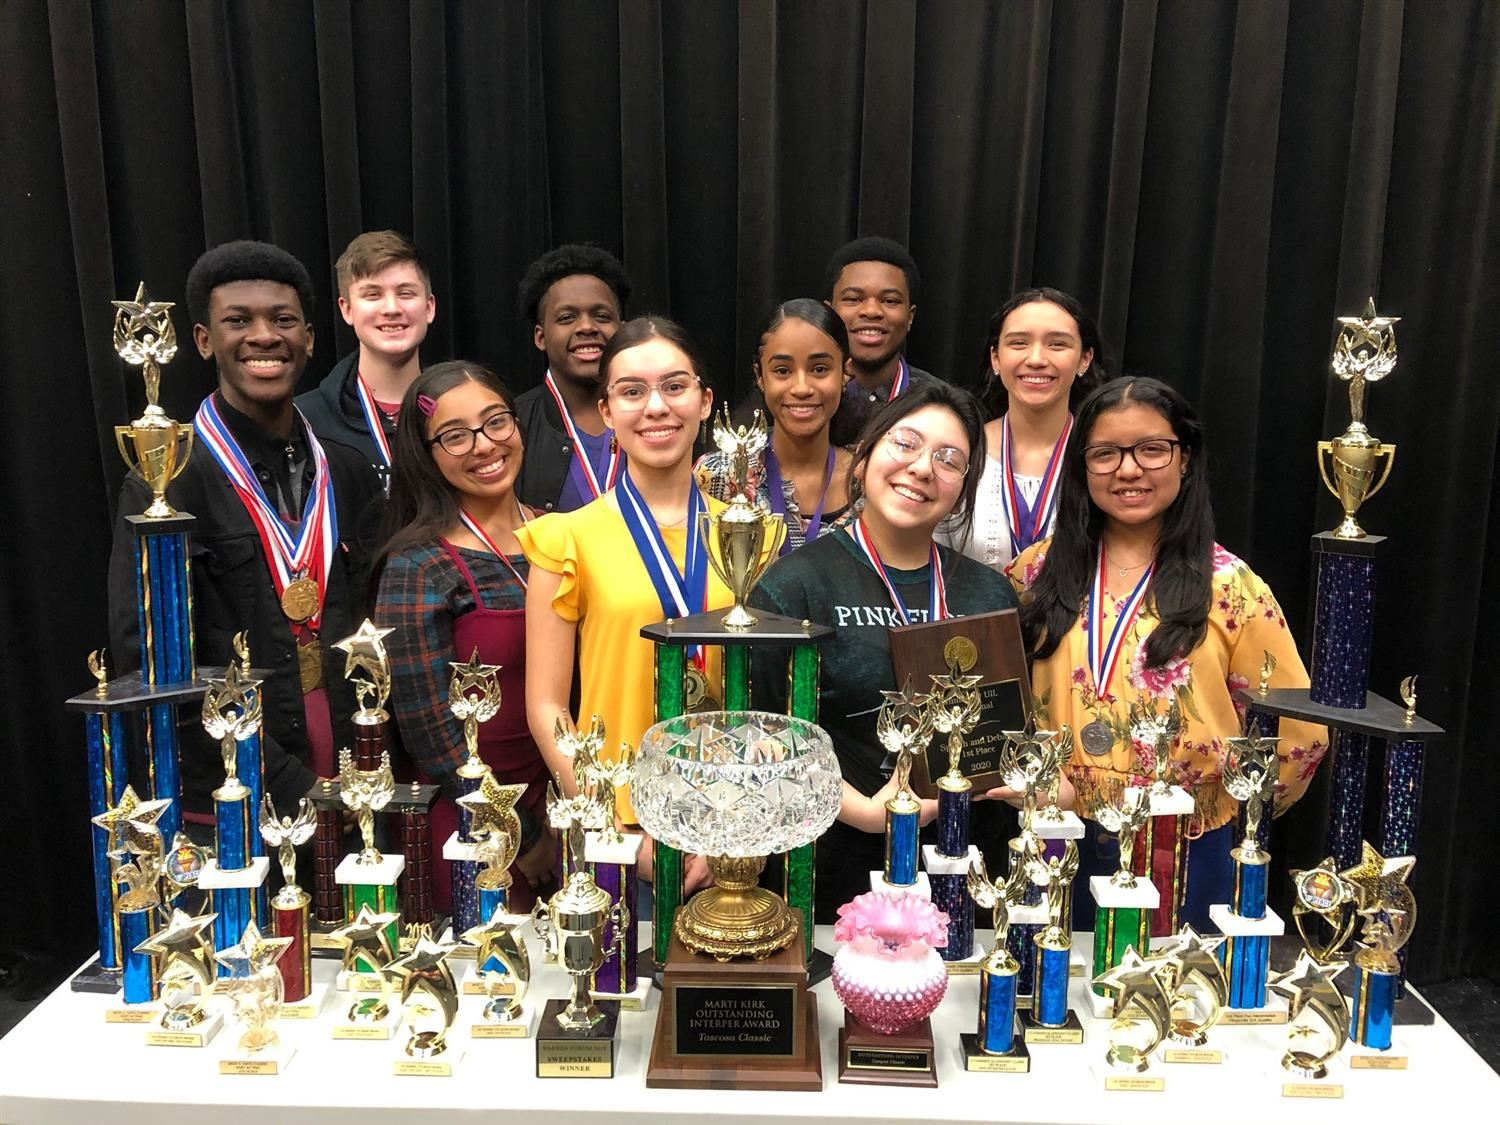 Judson Theater students going to state/nationals